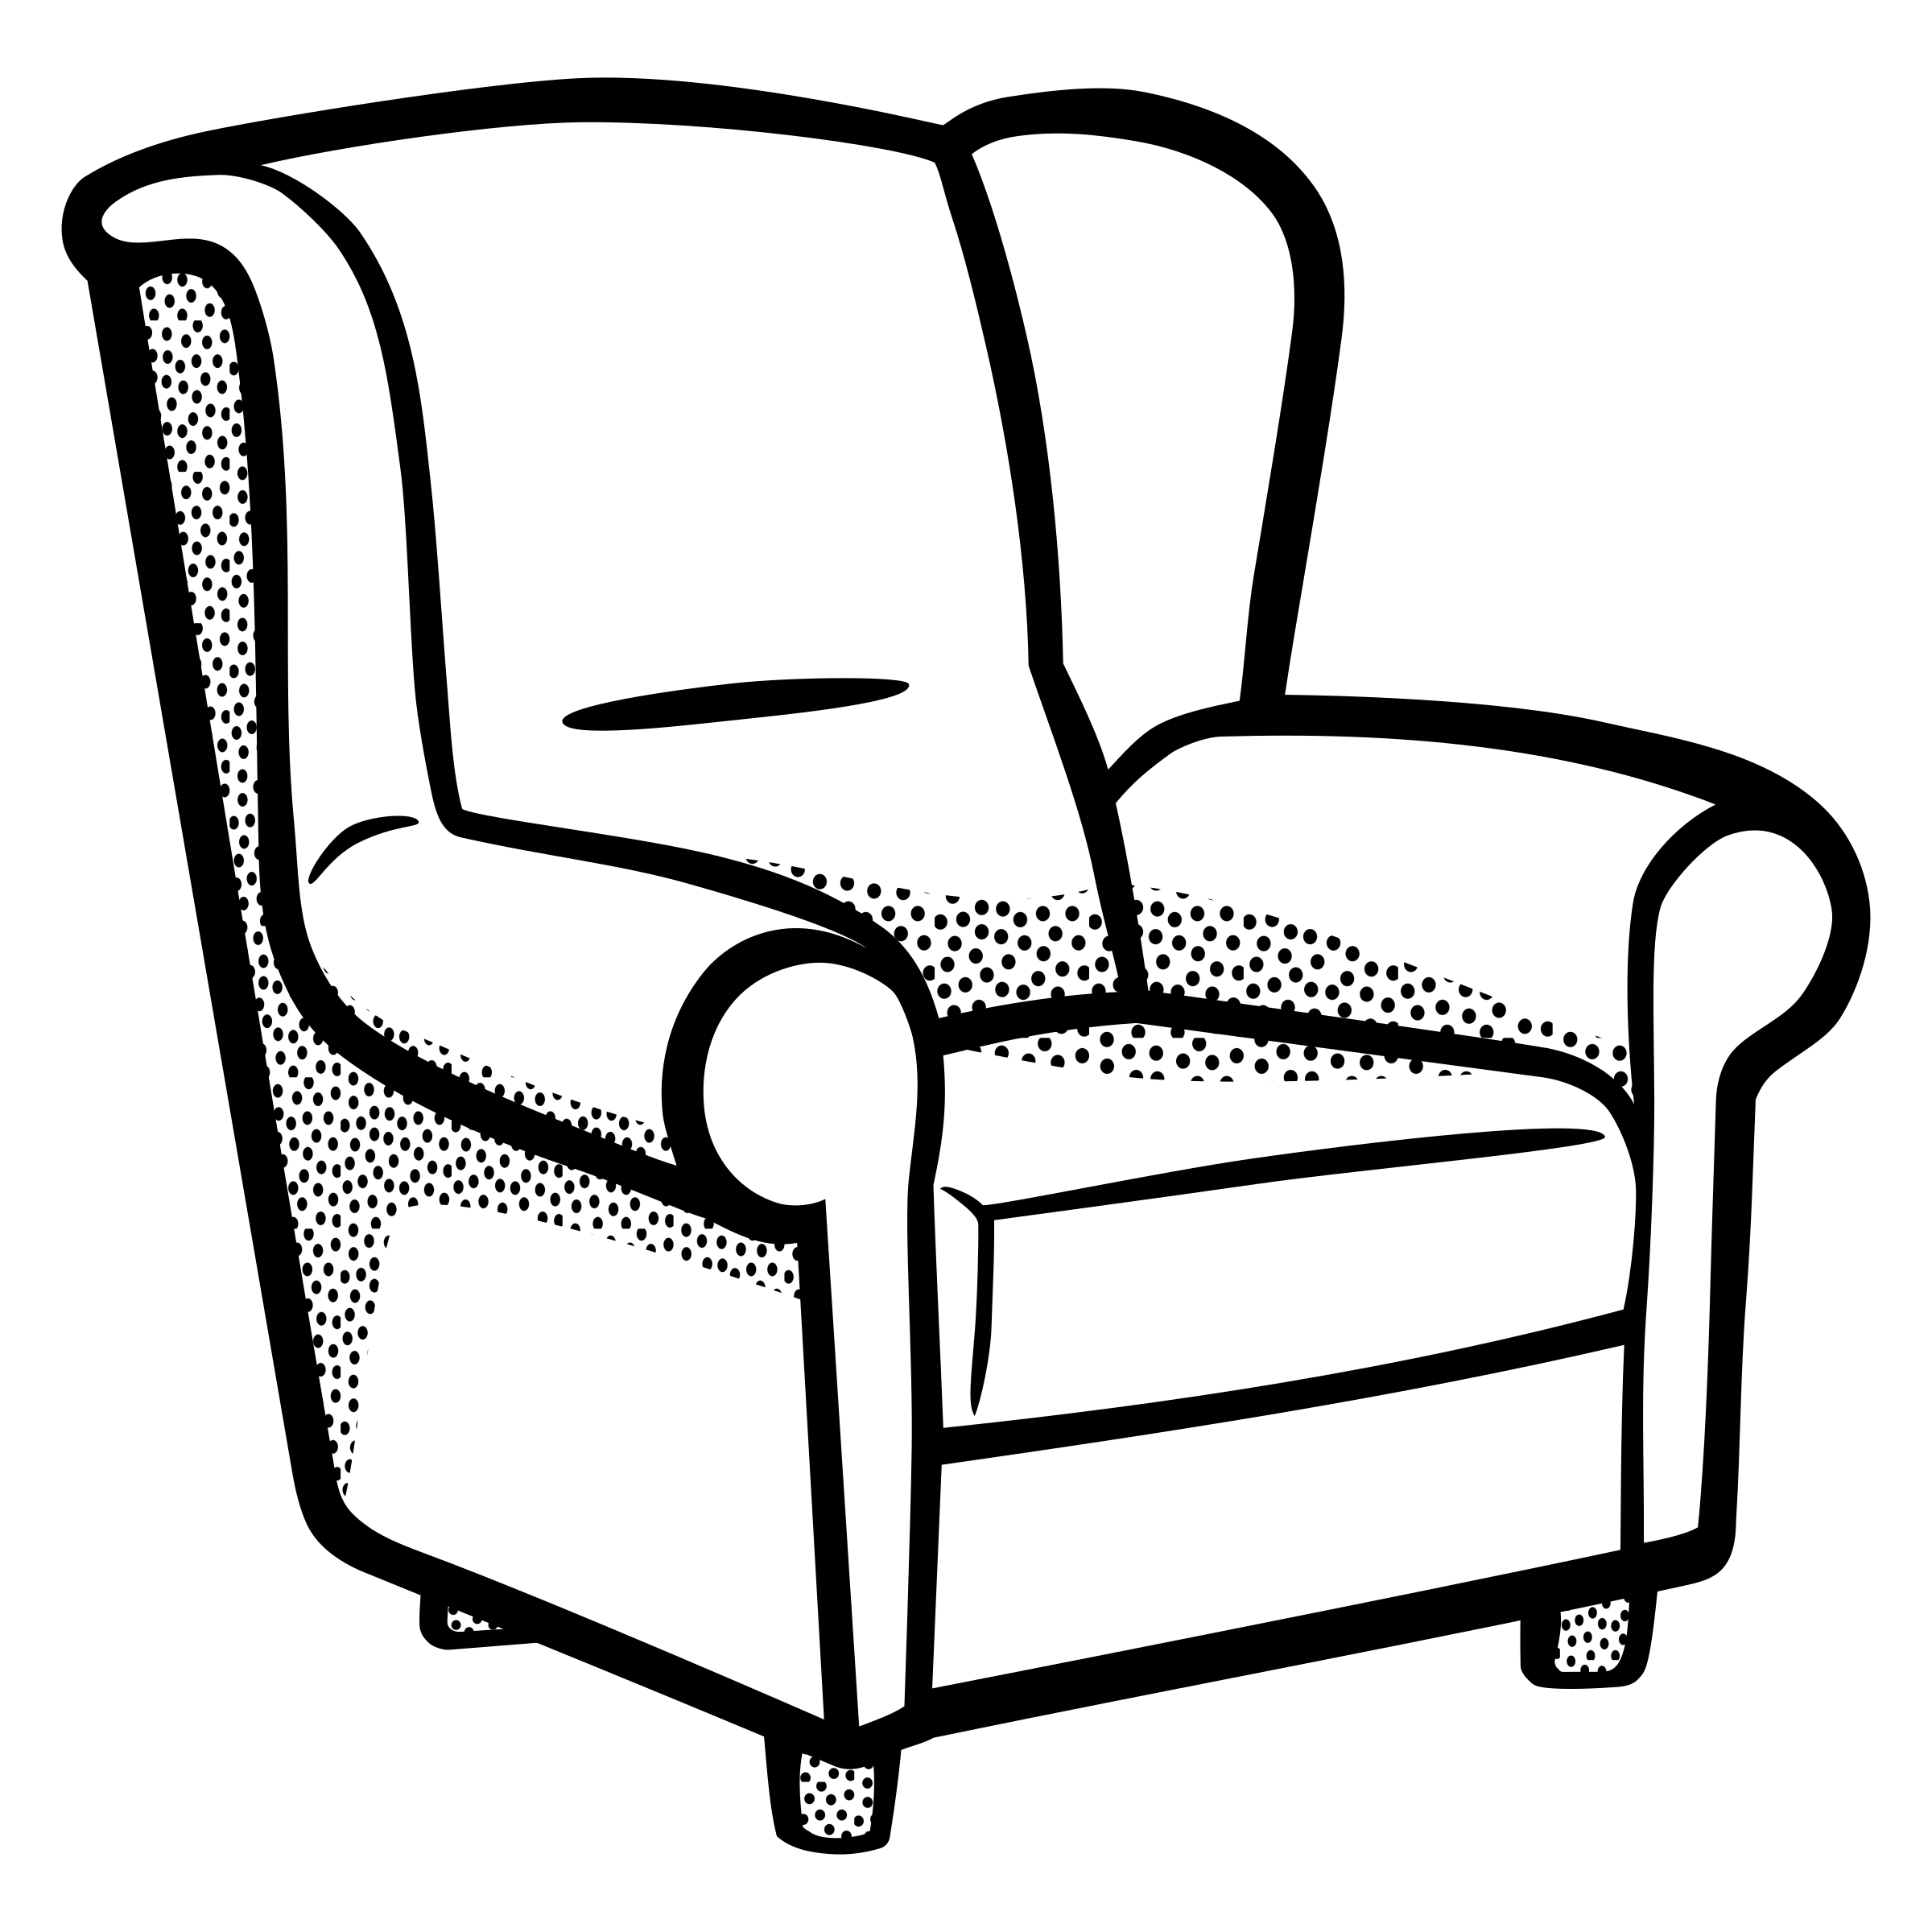 School chair clipart black and white free stock Armchair Clipart. Armchair Clipart - Deltasport.co free stock